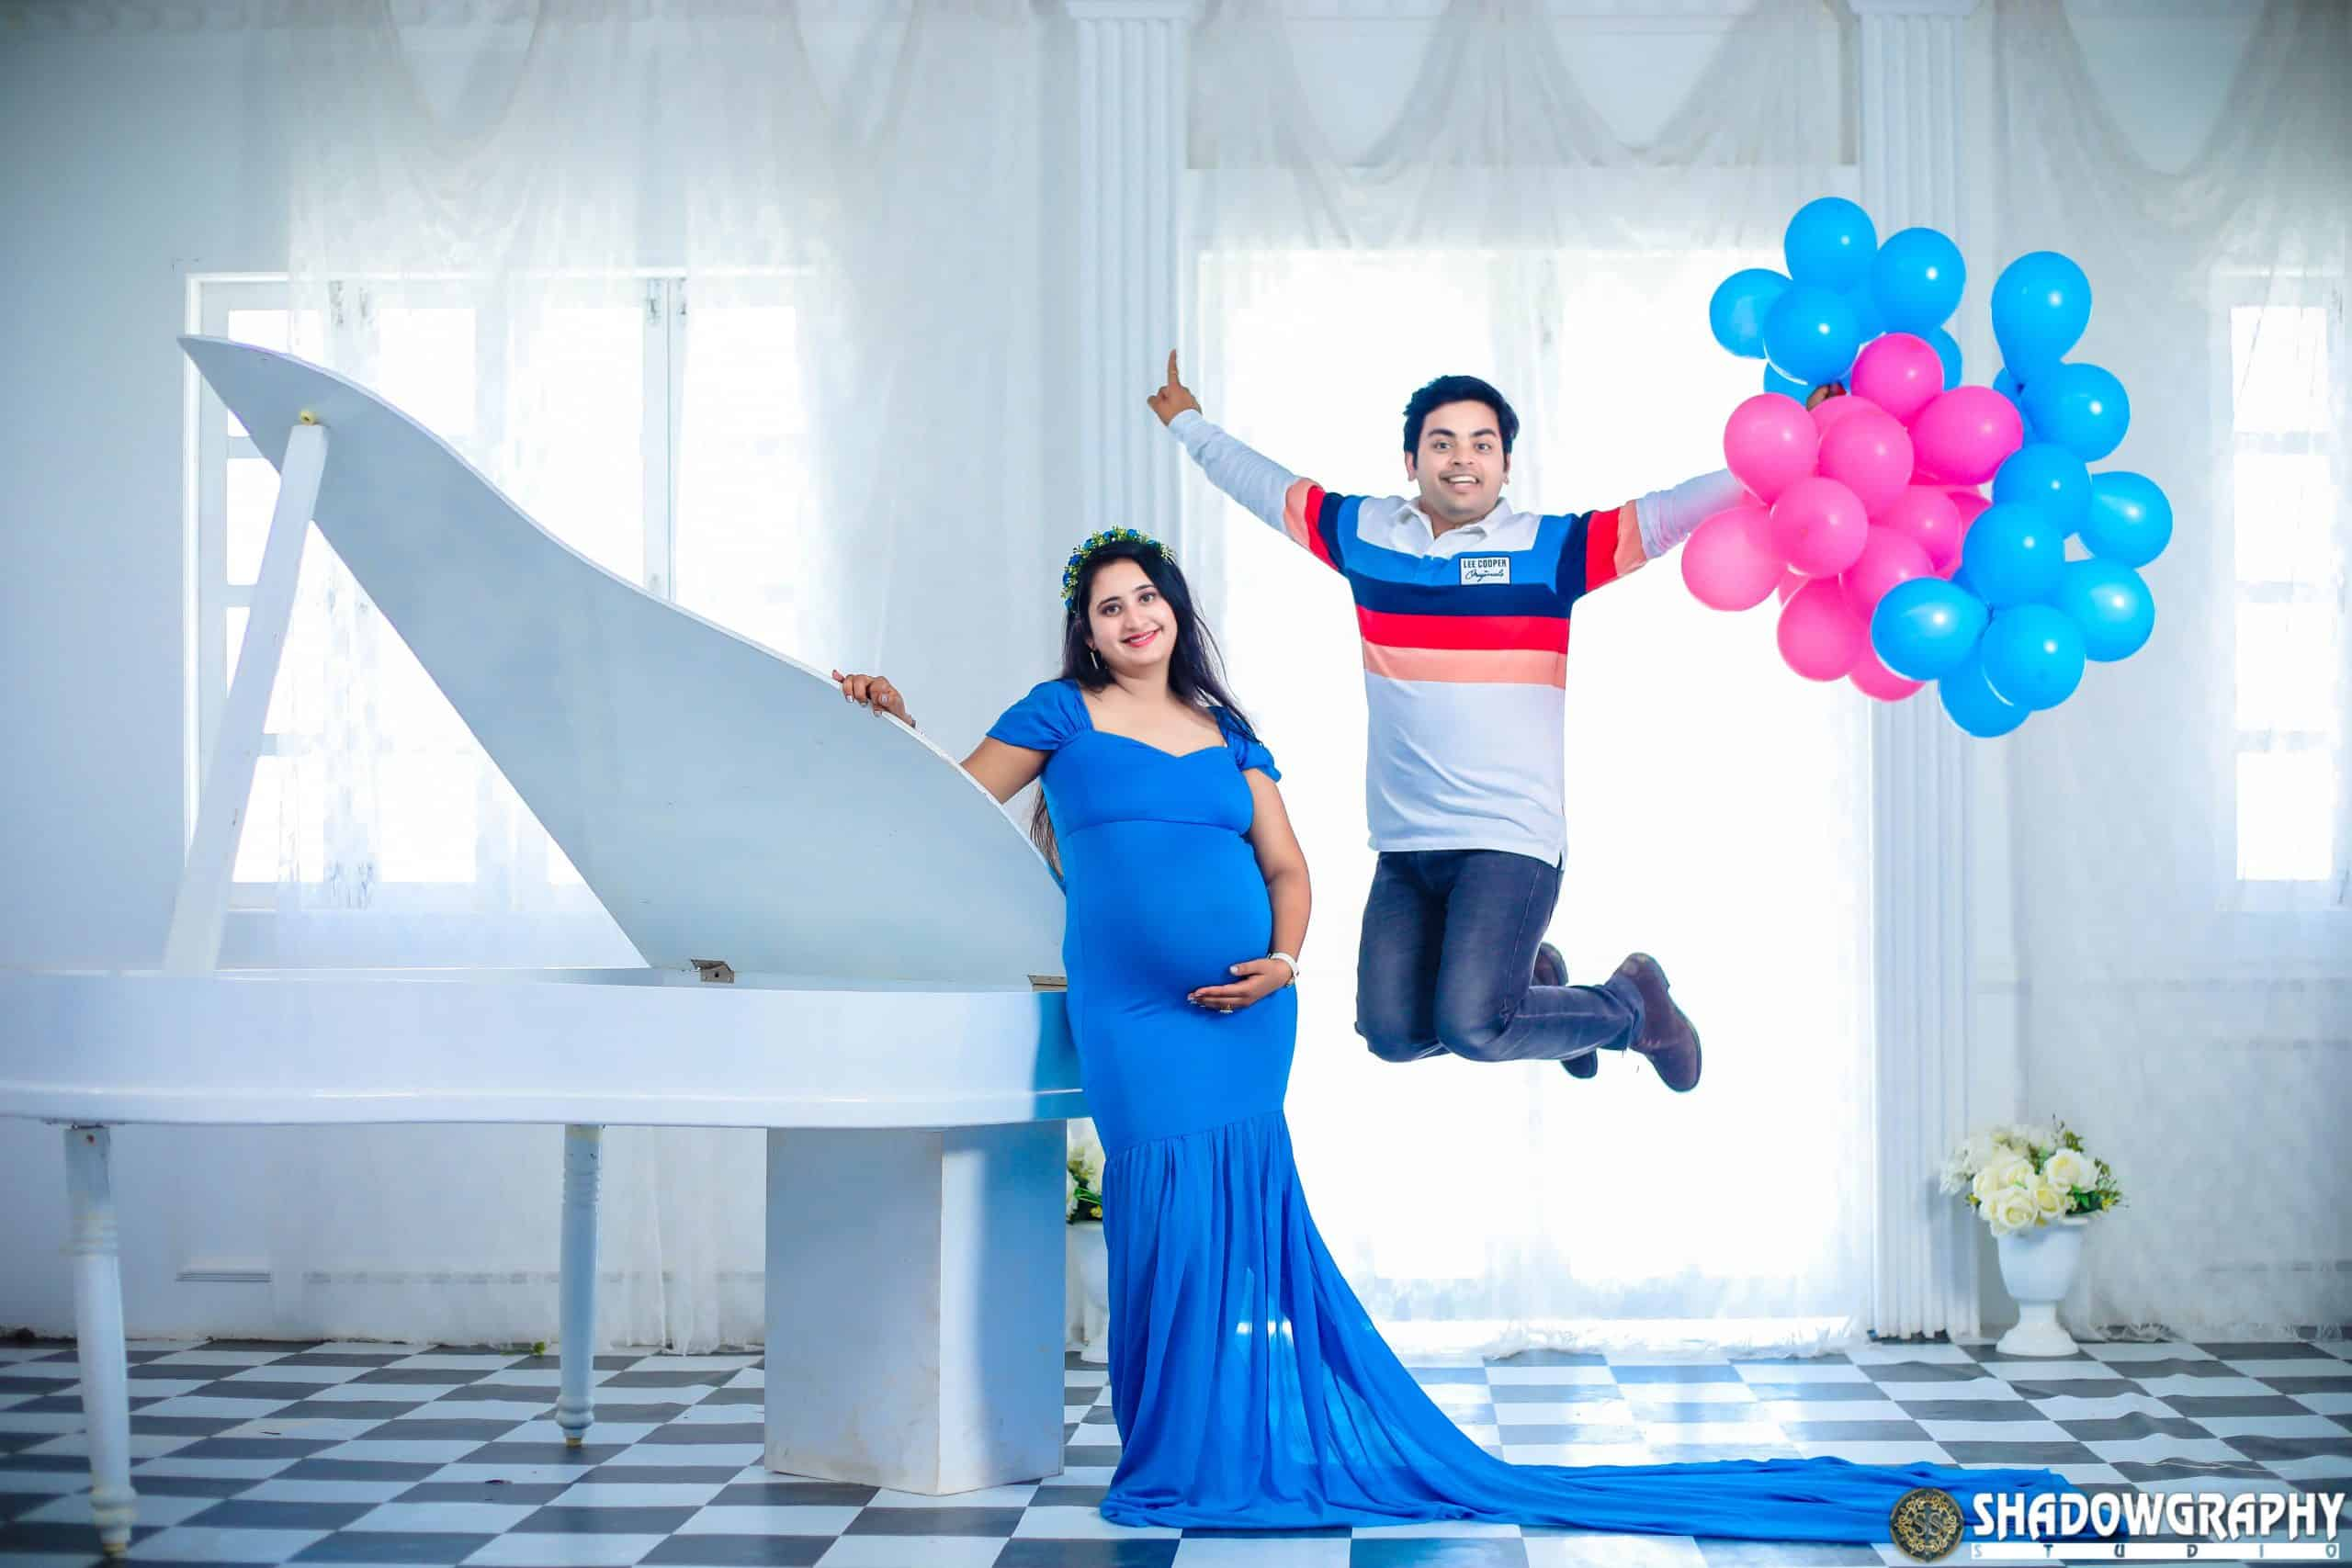 MATERNITY Shadowgraphy Studio maternity shoot in indore